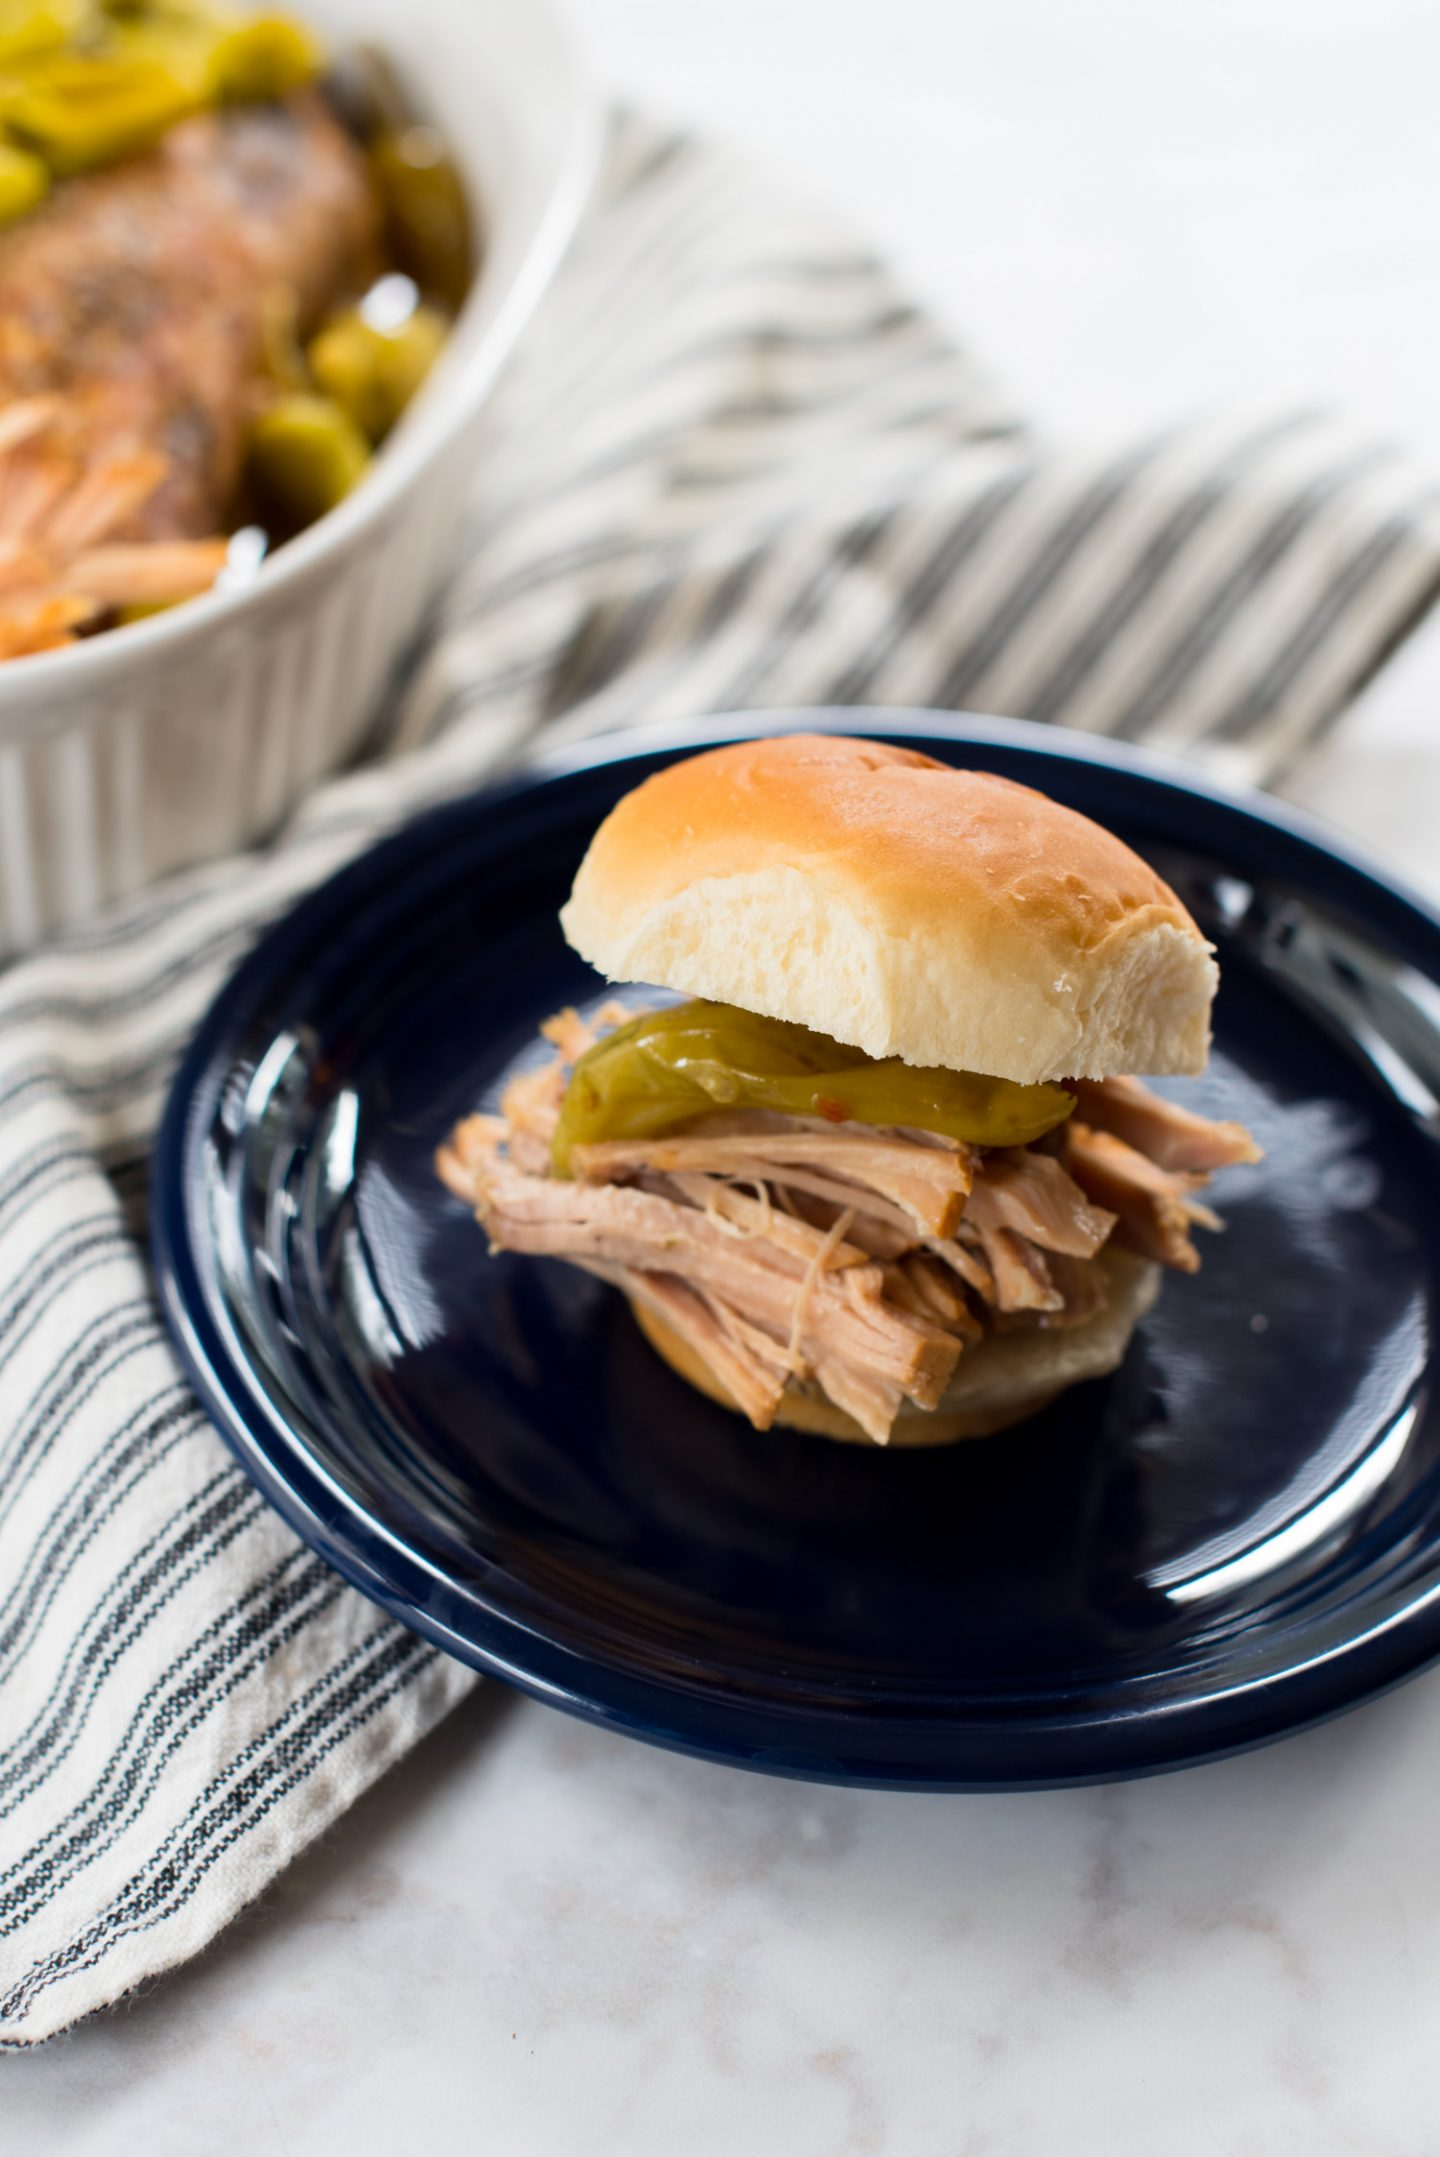 Easy Low Carb Dinner: 3 Ingredient Pepperoncini Pulled Pork // Miss Molly Moon